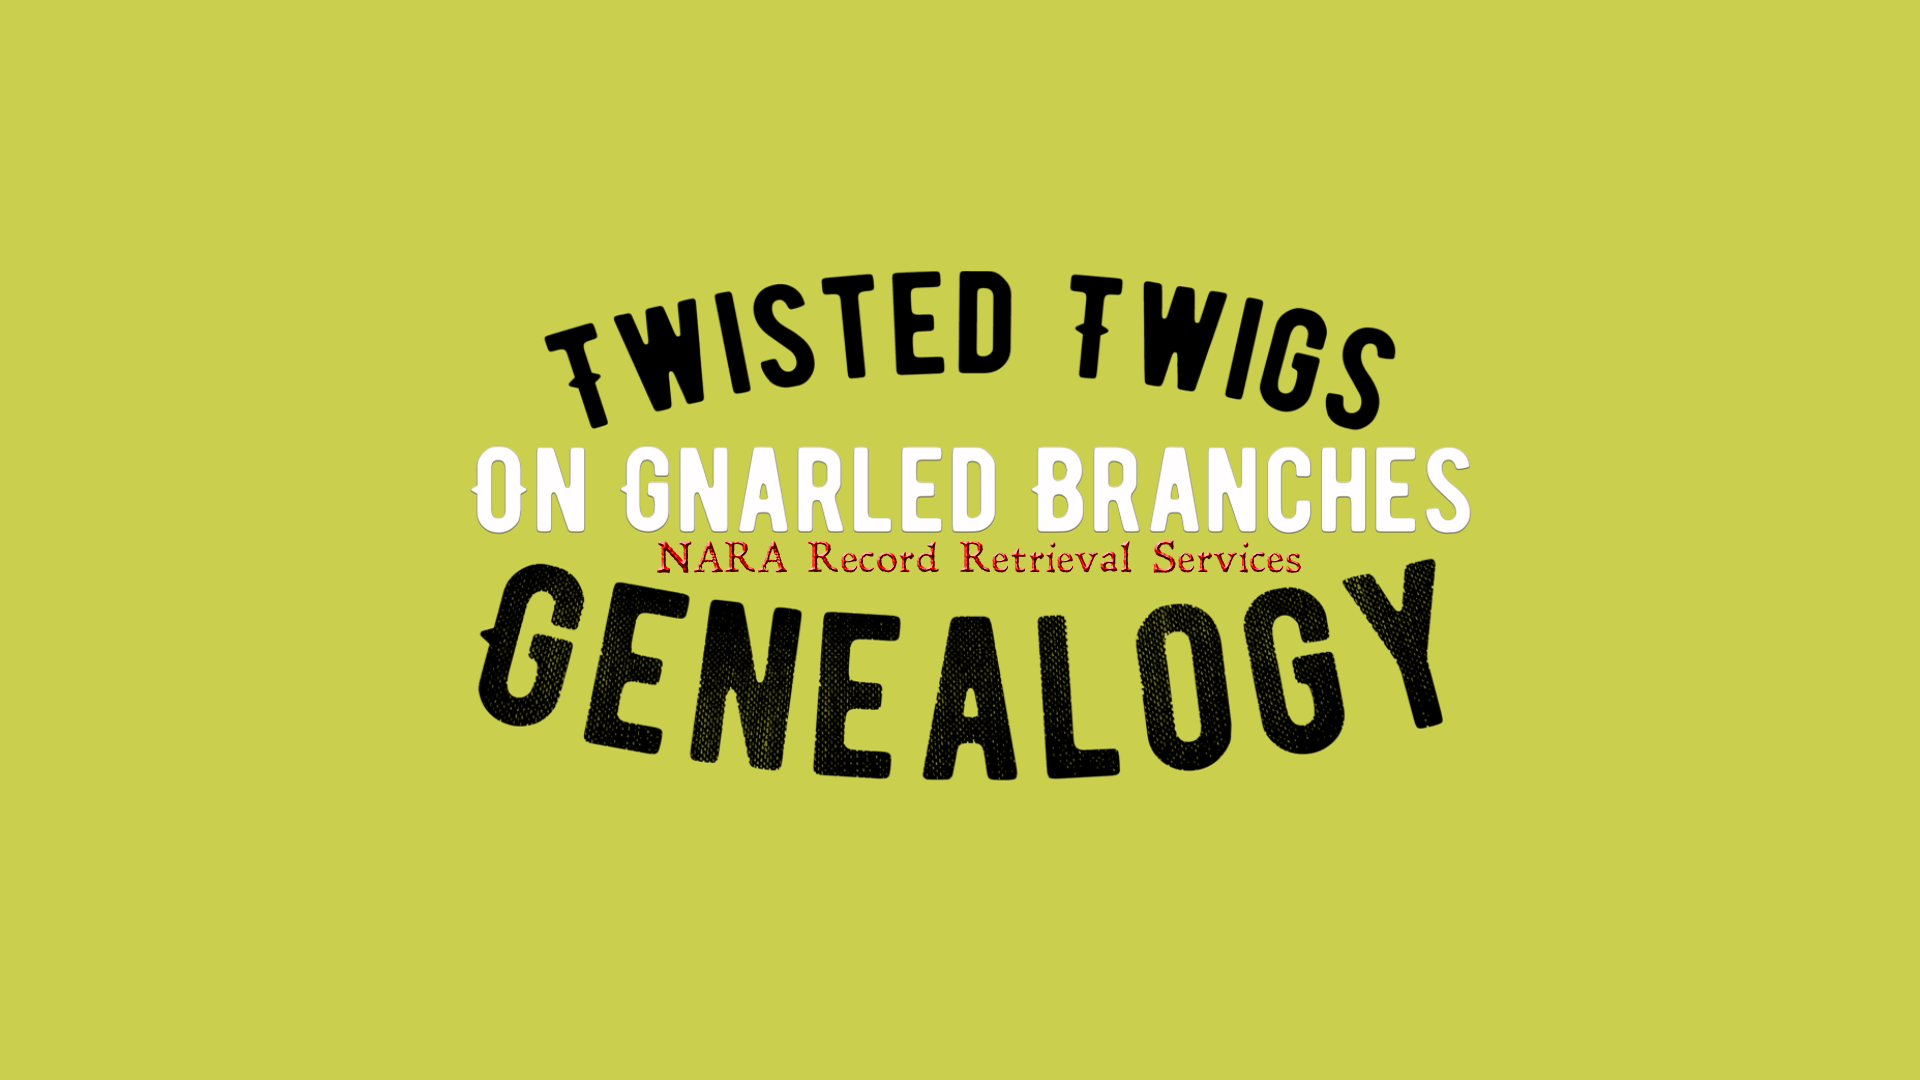 Twisted Twigs on Gnarled Branches Genealogy